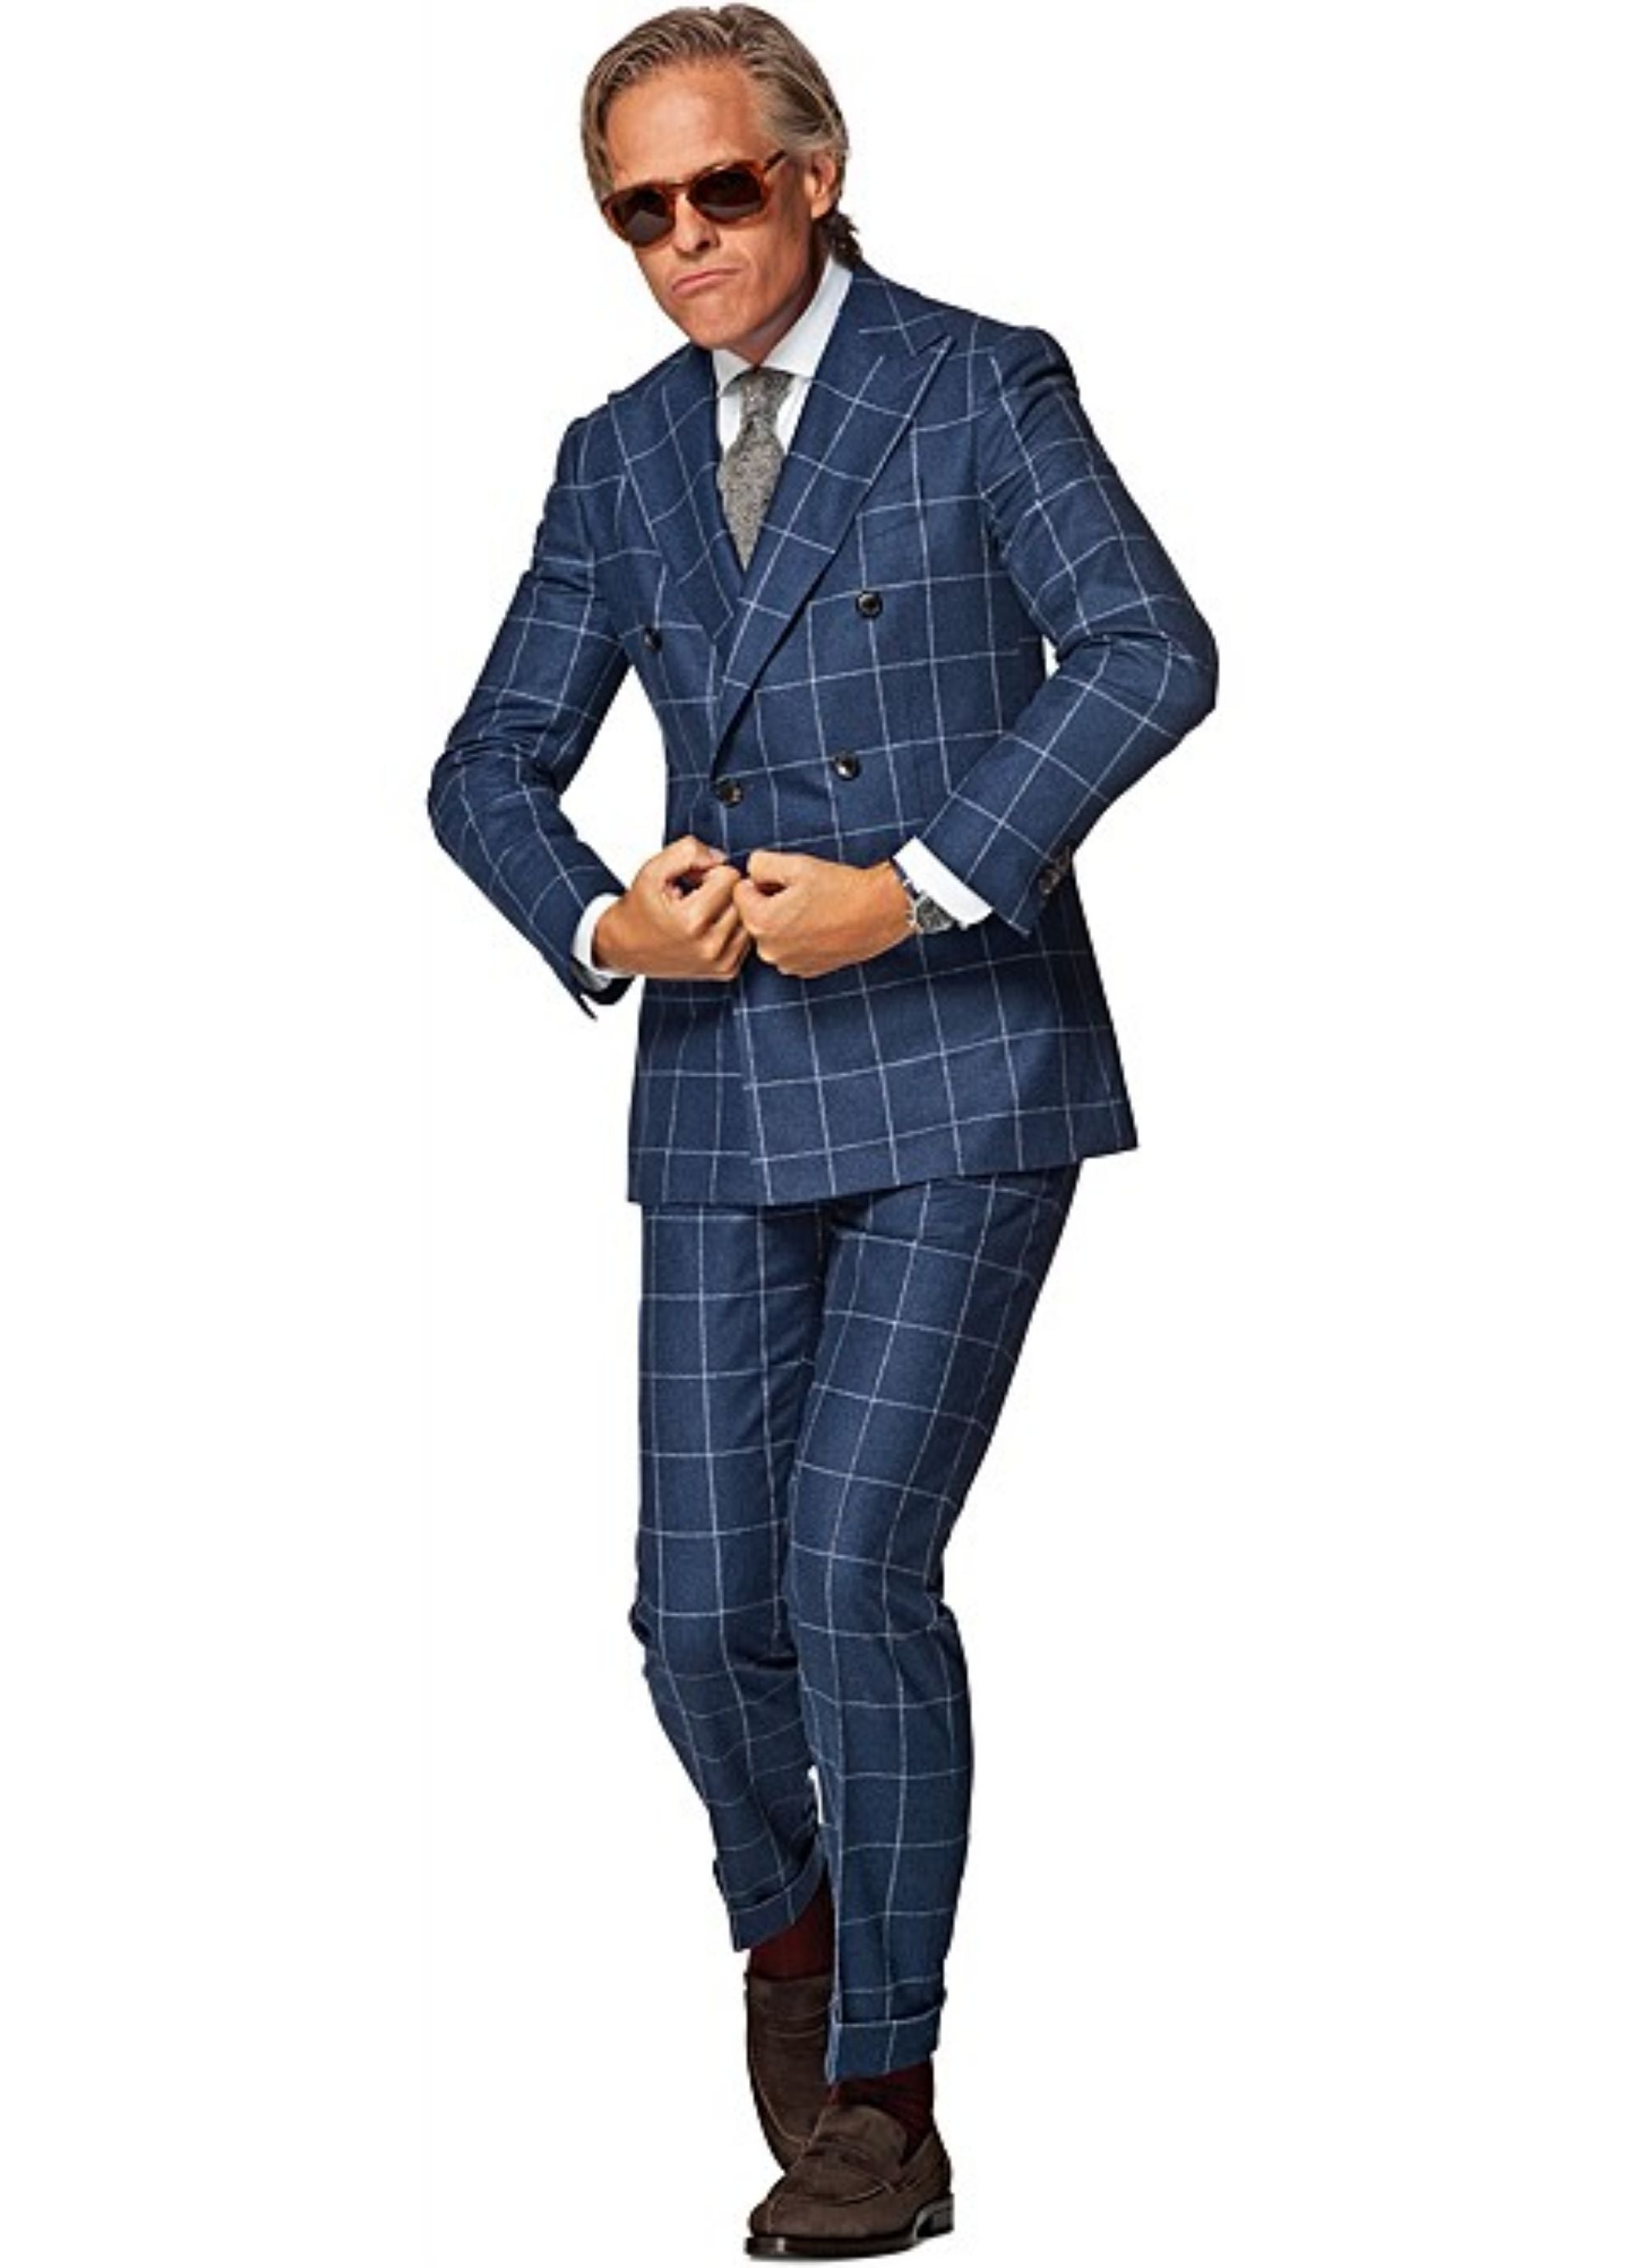 Navy blue windowpane suit - Suitsupply Jort fit with a gray tie